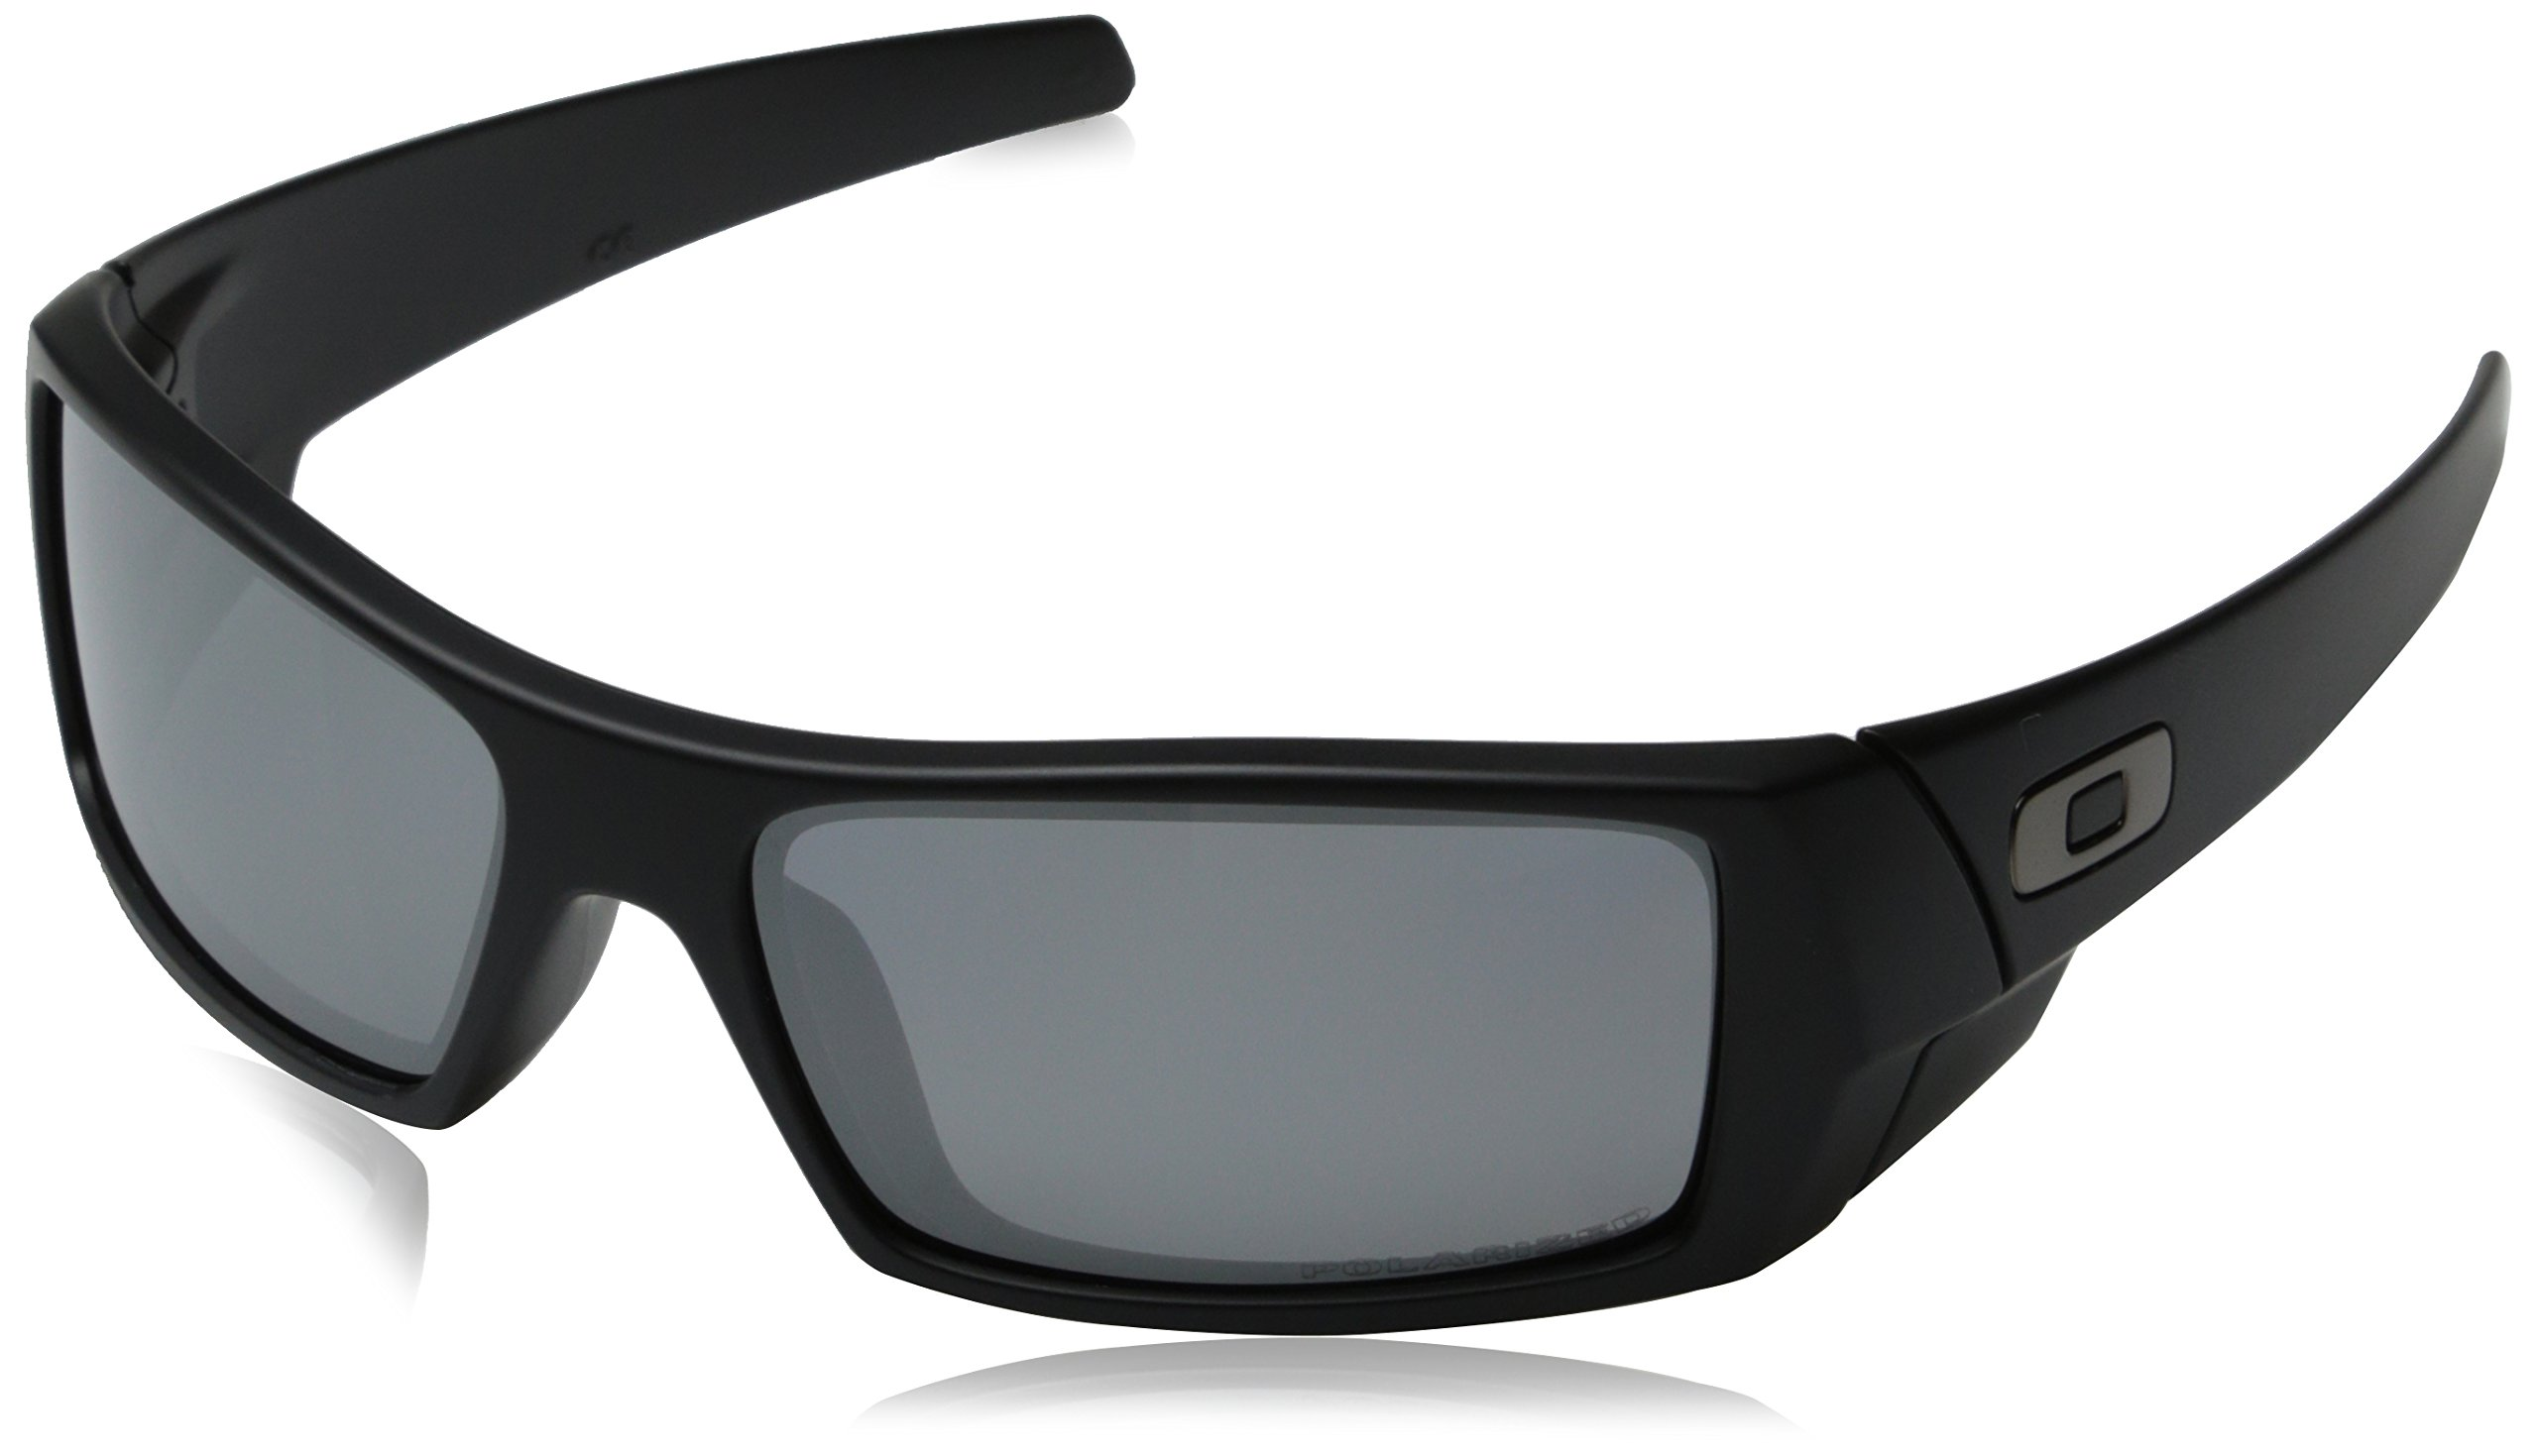 oakley gascan sunglasses accessories  oakley men gascan sunglasses